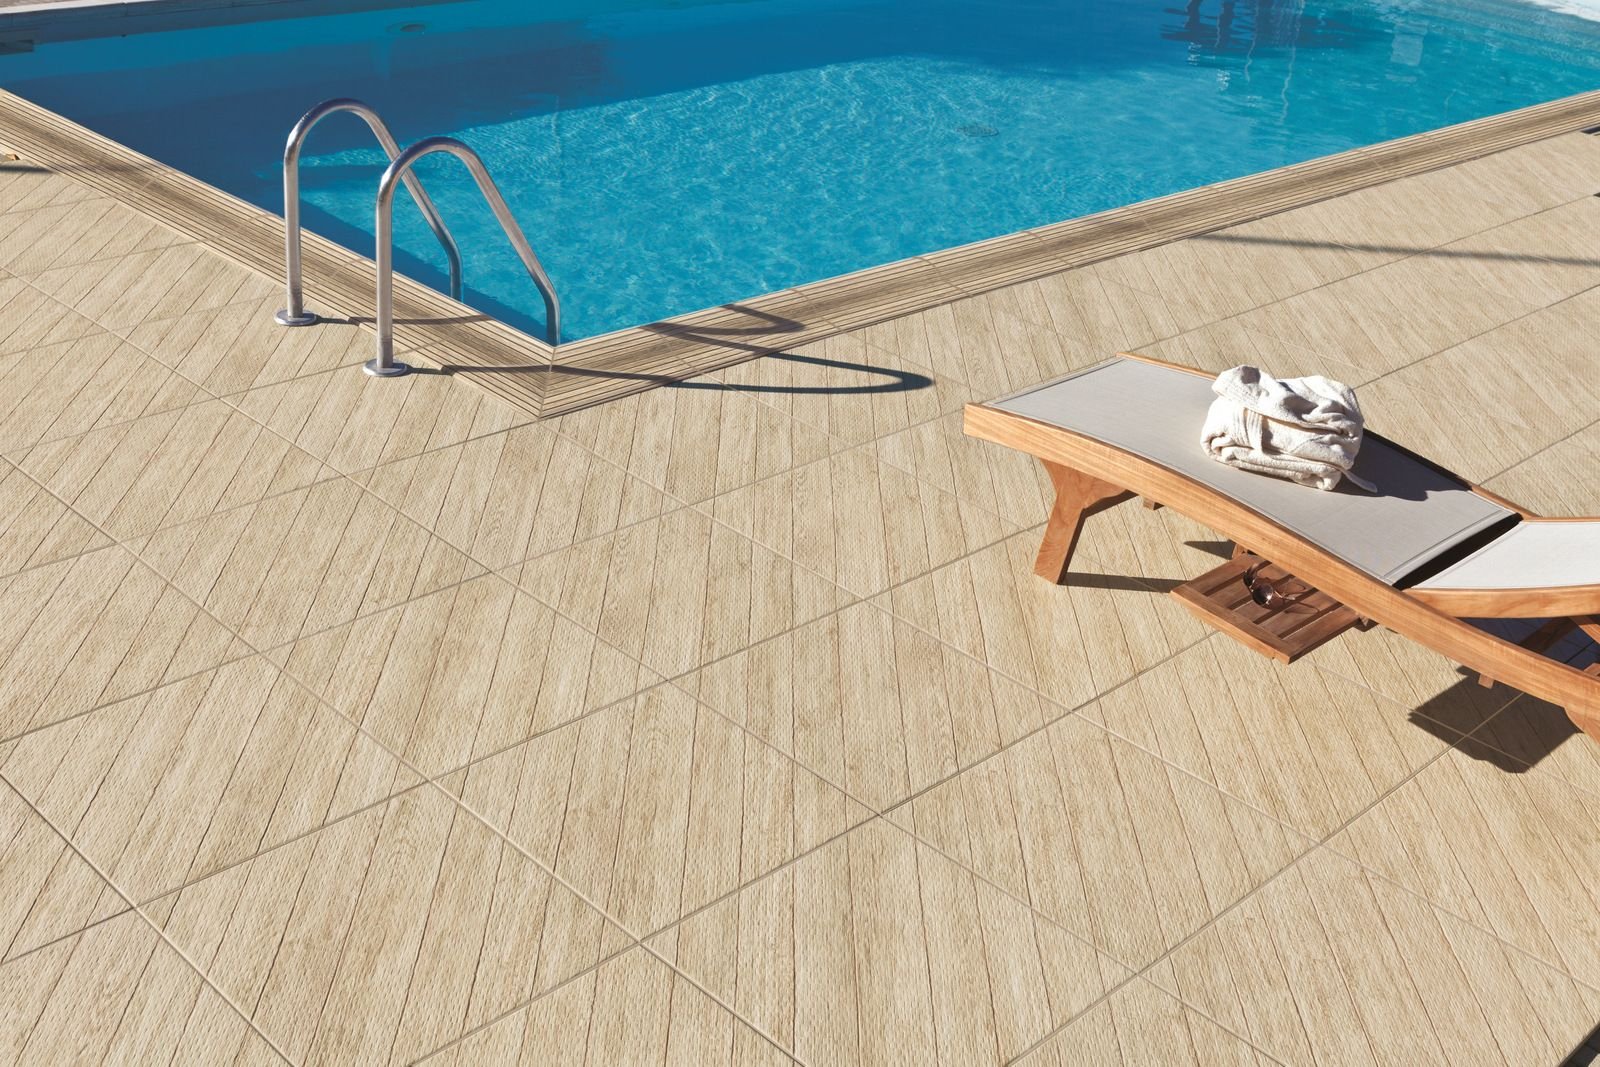 Woodays Rovere Decapato